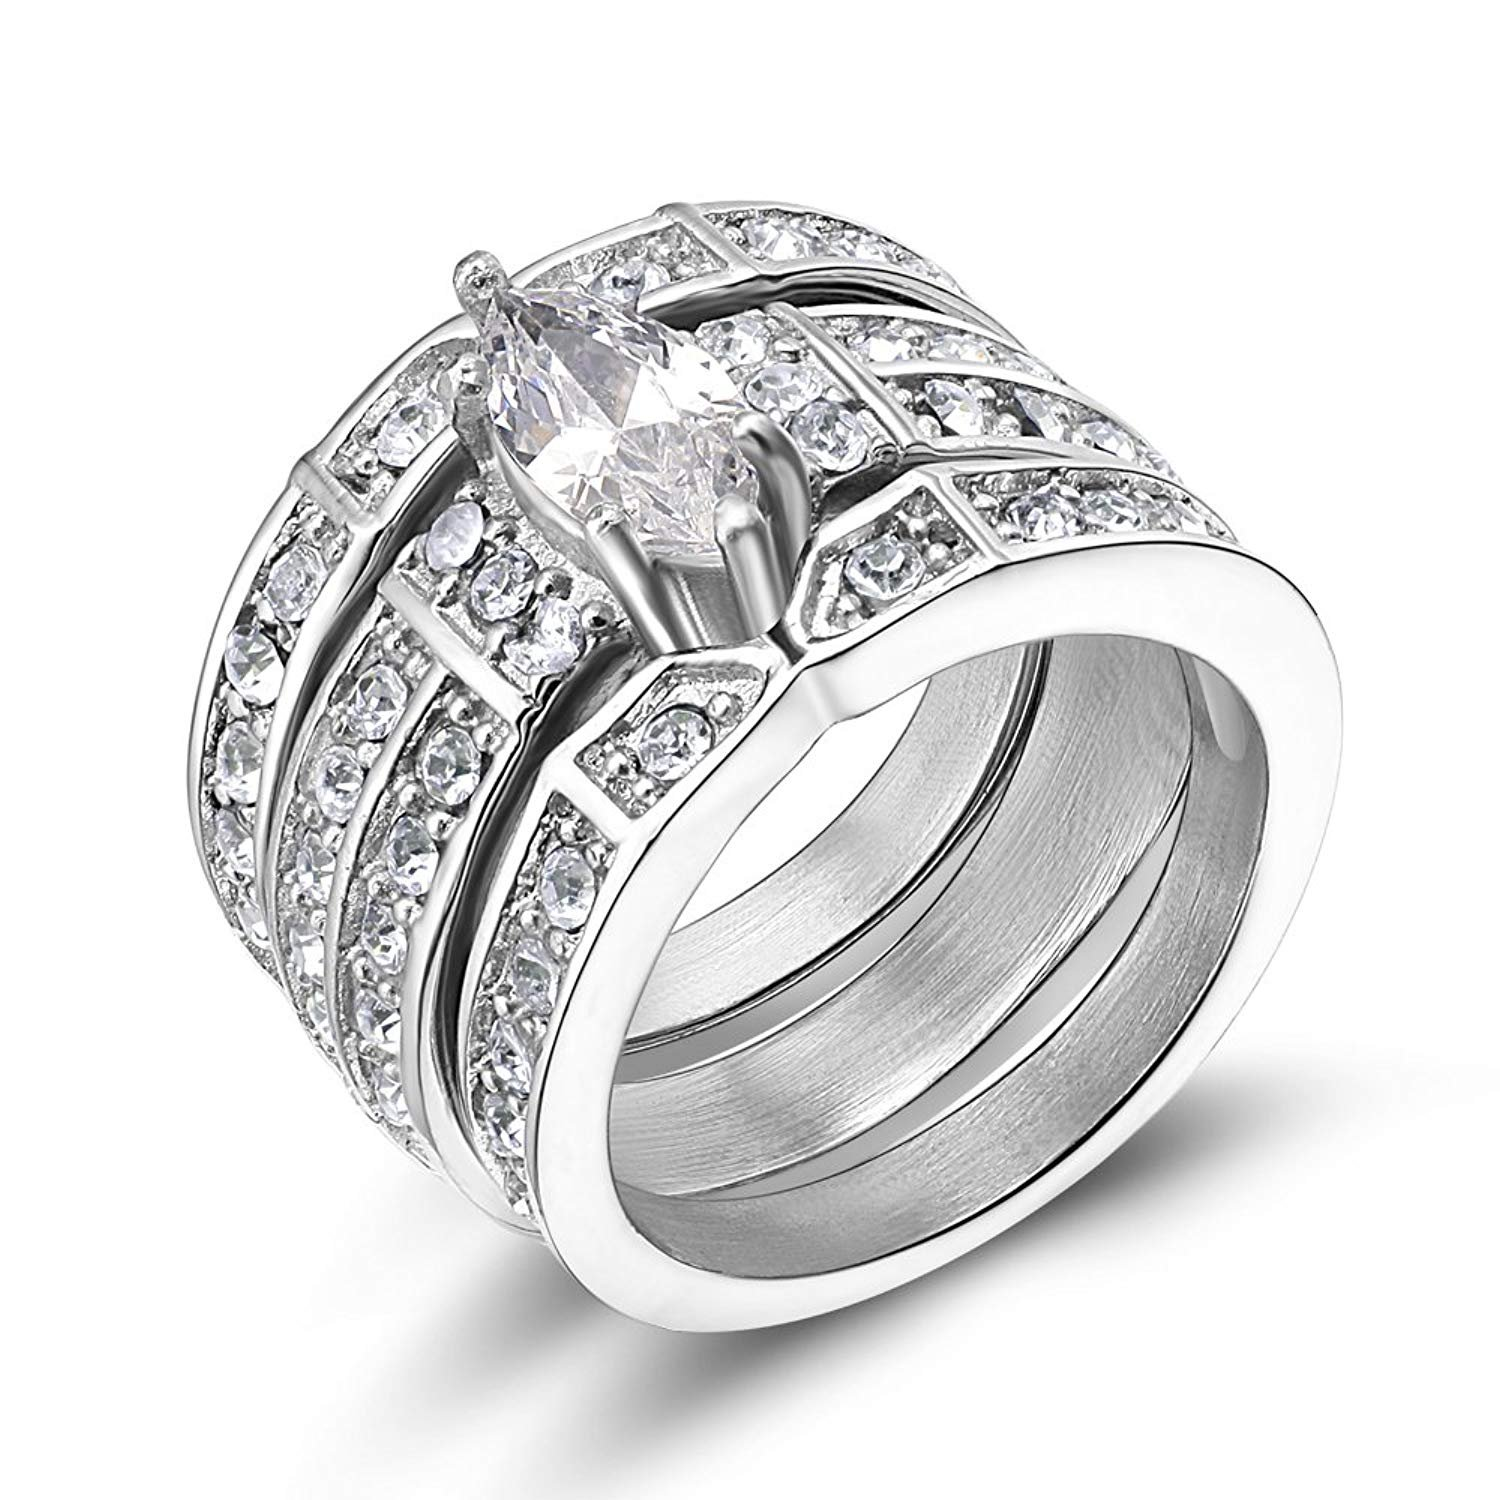 Stainless Steel Cubic Zirconia Wedding Ring Set Marquise Style for womens (9.5)